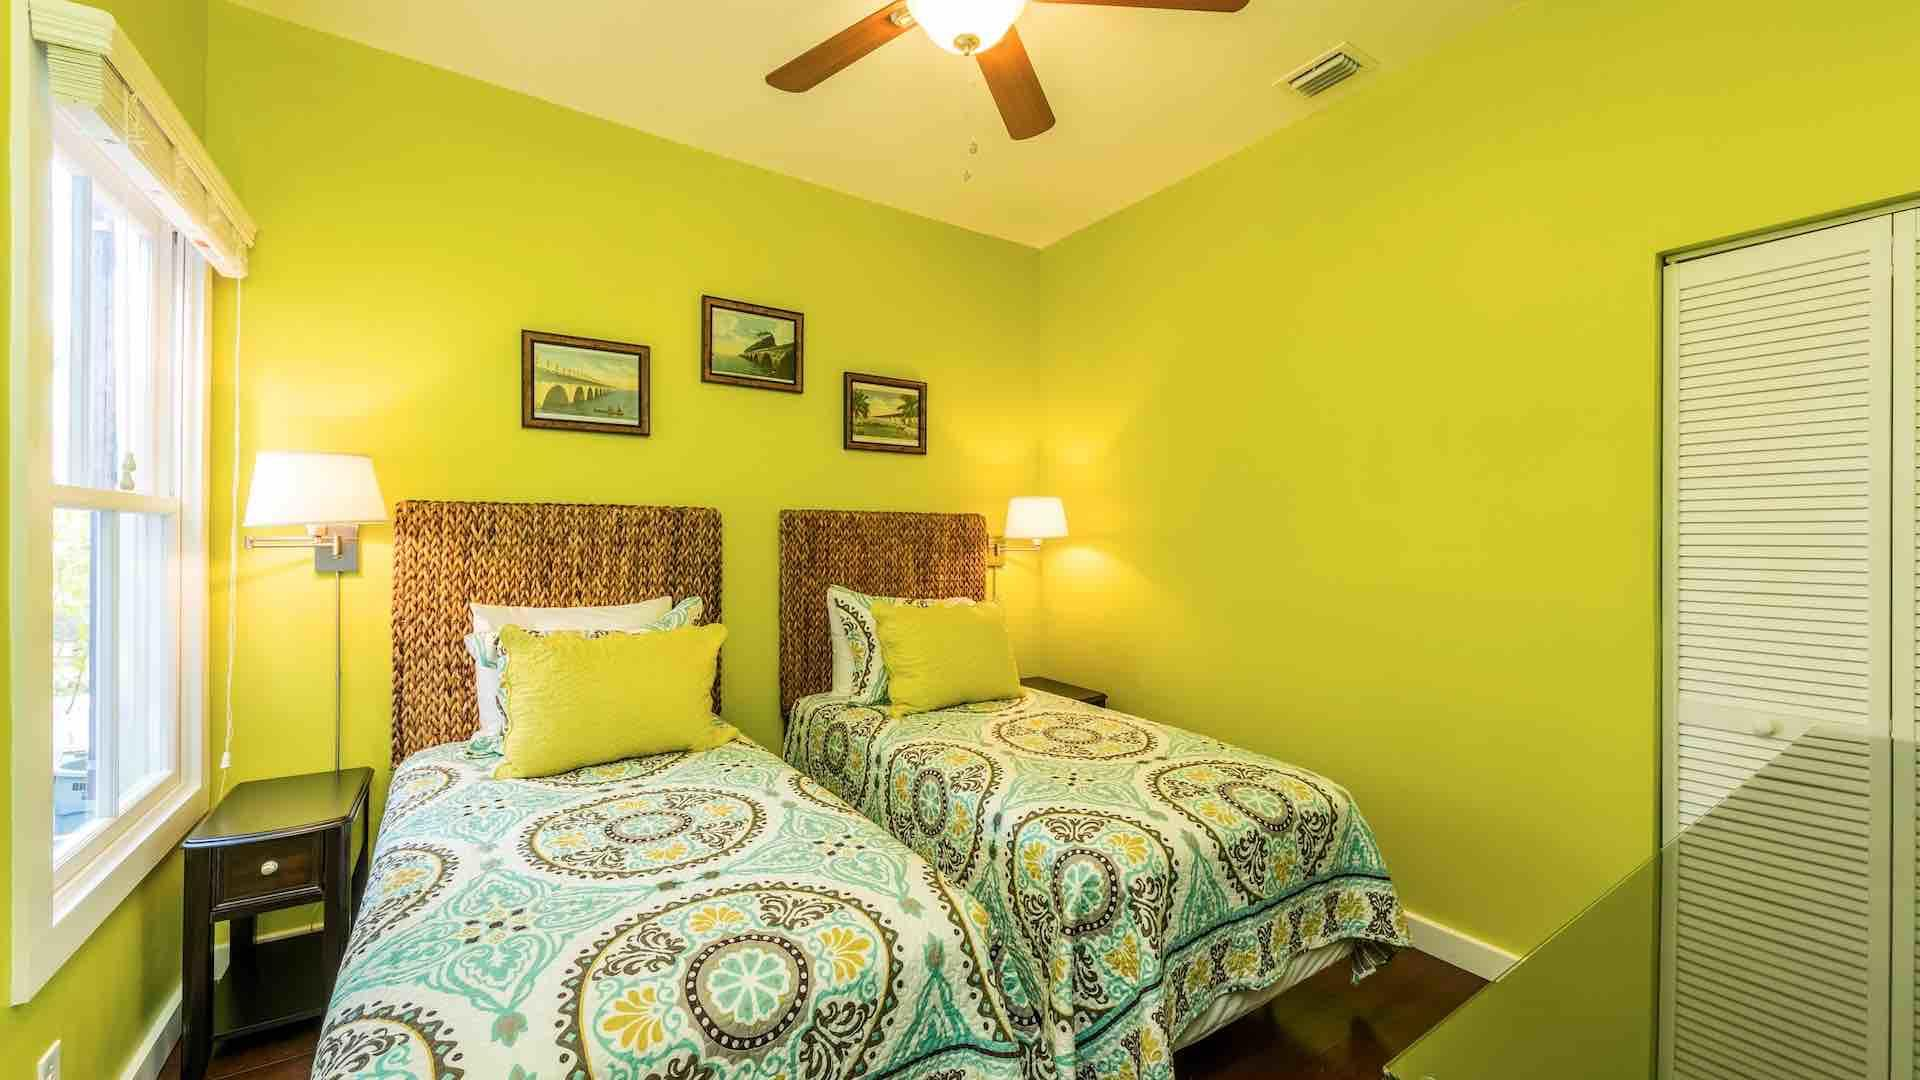 The guest bedroom has two twin beds that can convert to a King bed upon request...